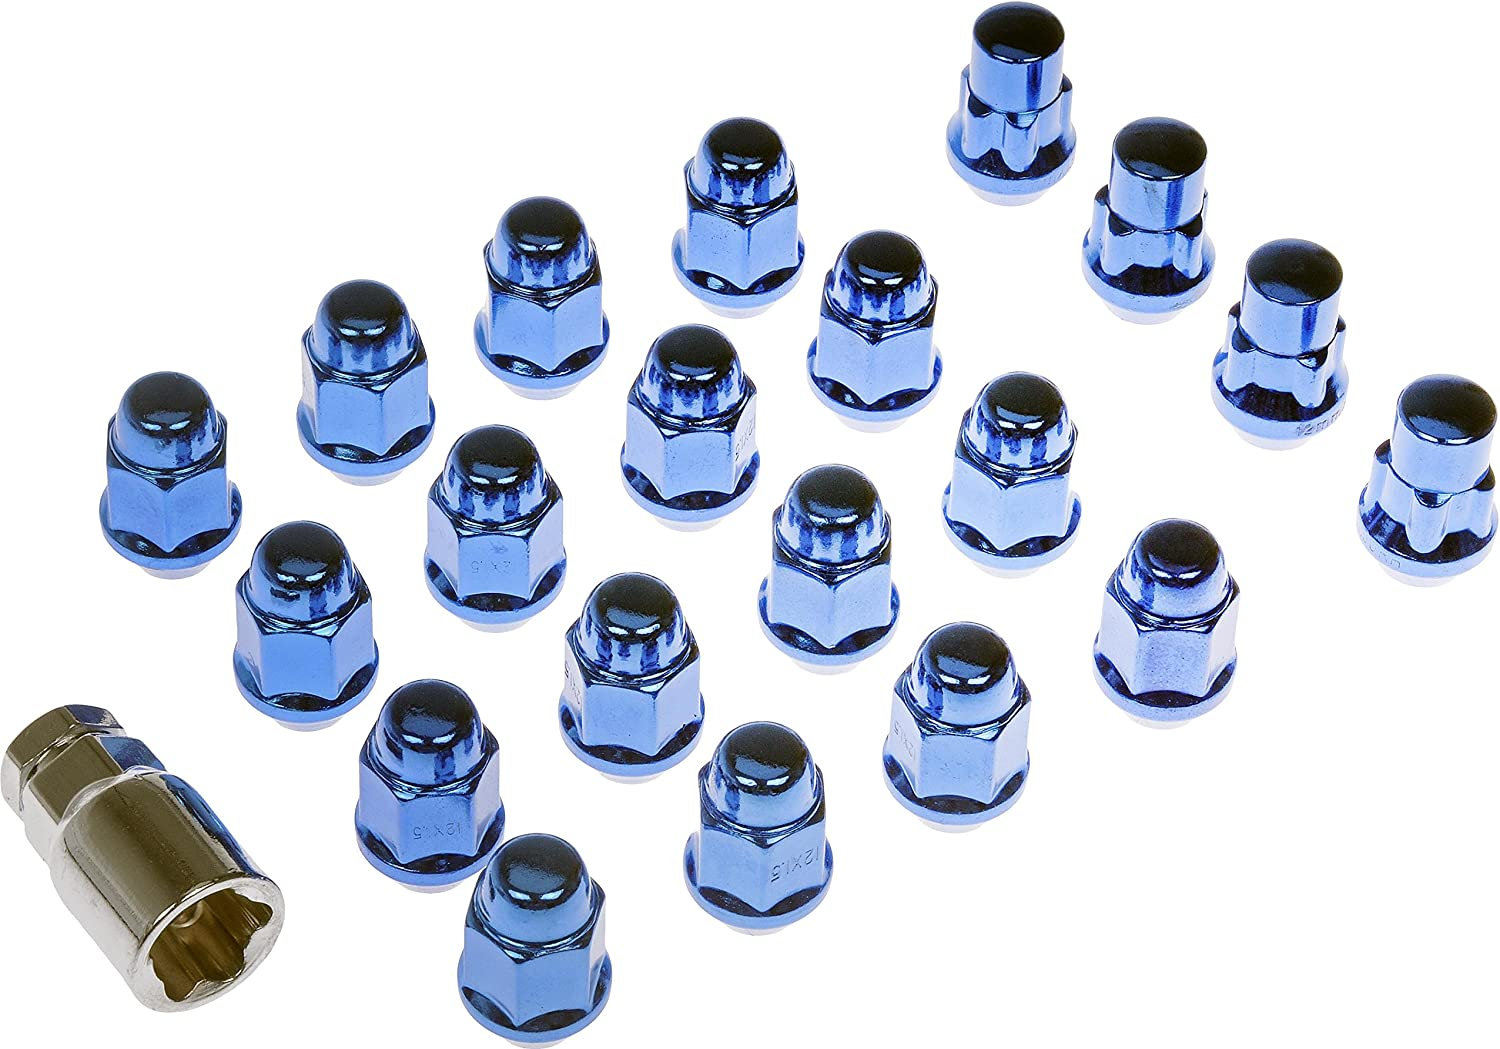 Dorman 711-342 Pack of 16 Wheel Nuts with 4 Lock Nuts and Key